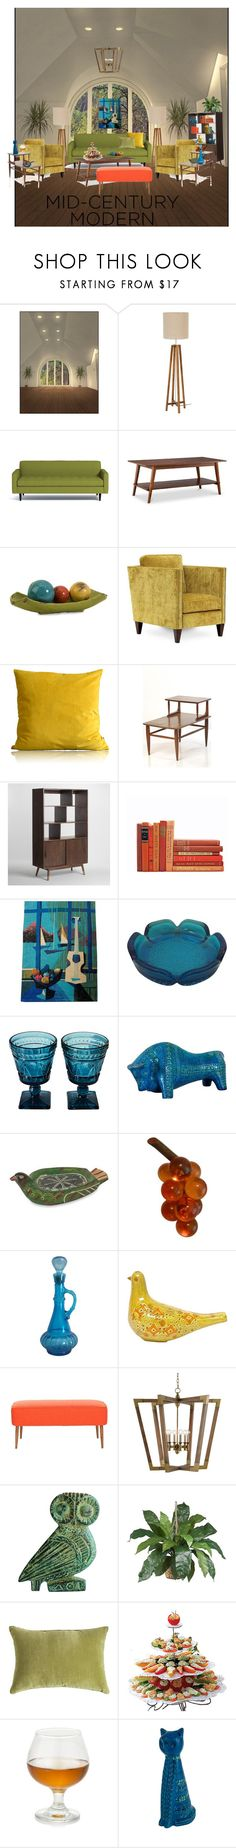 """""""mid century memories"""" by rewolf71 ❤ liked on Polyvore featuring interior, interiors, interior design, home, home decor, interior decorating, Foremost, IMAX Corporation, Homeware and Cost Plus World Market"""